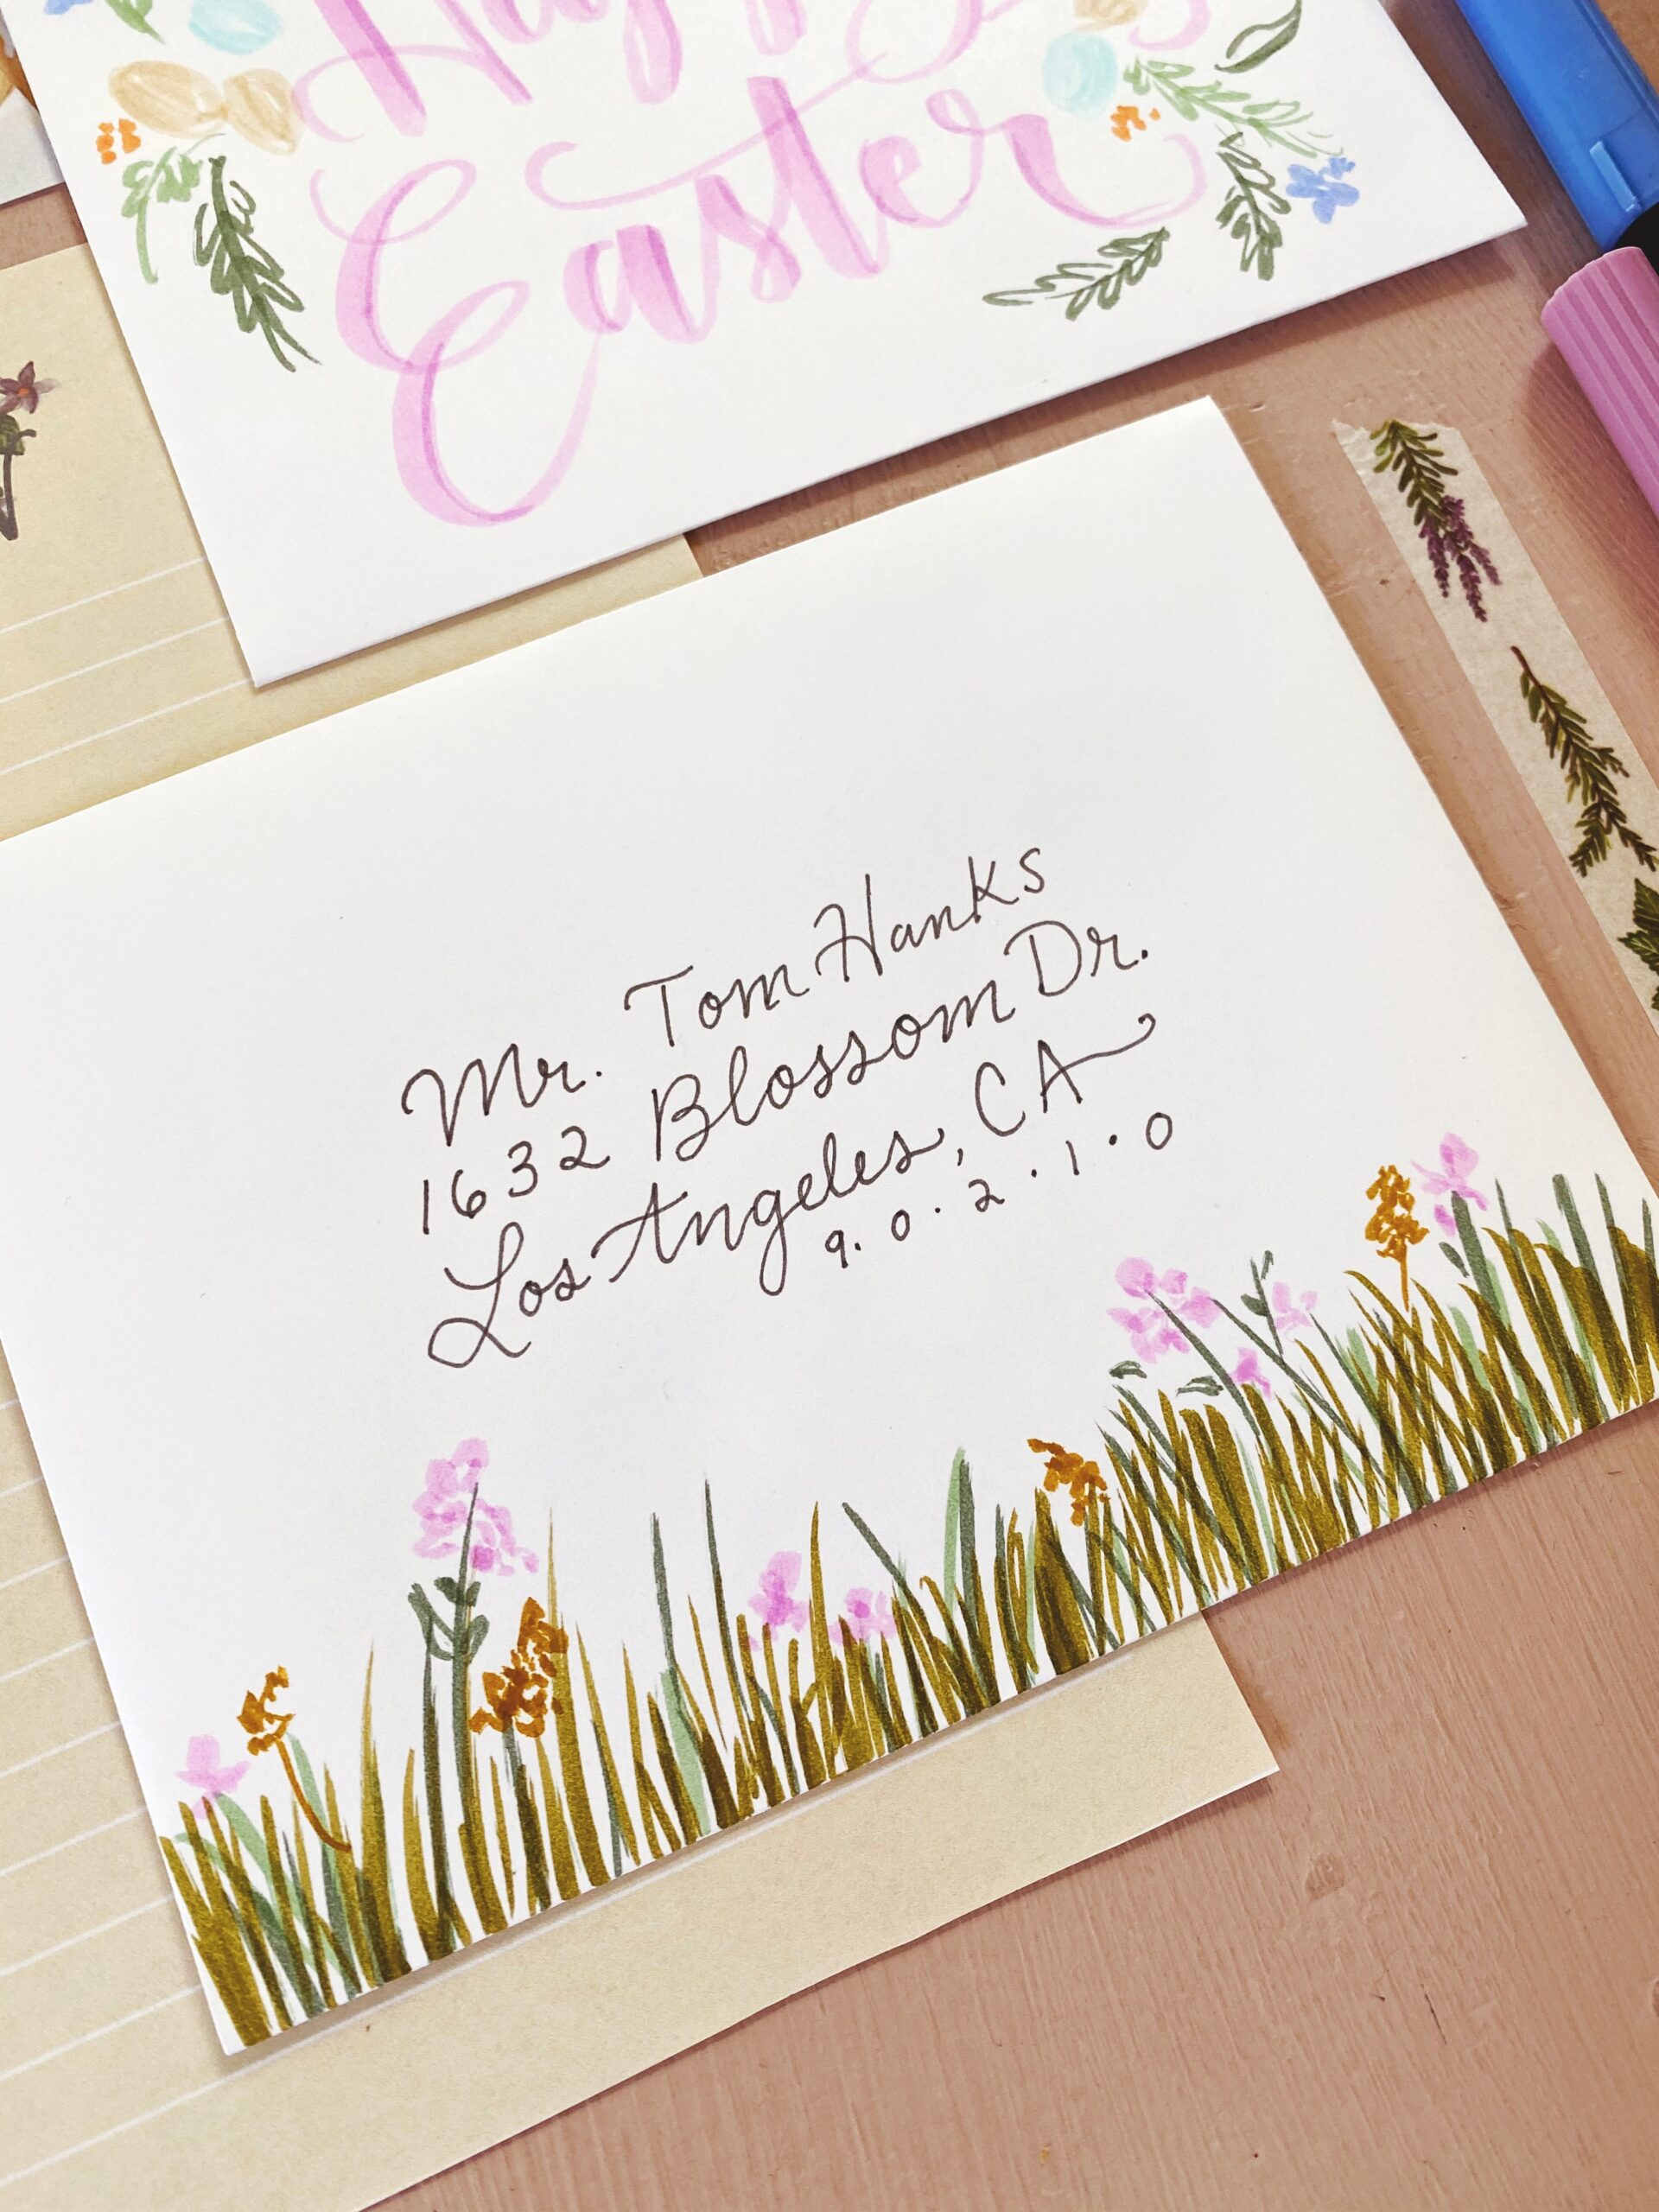 Easter Snail Mail Ideas for National Letter Writing Month | Mail art | Snail Mail Art | Letters